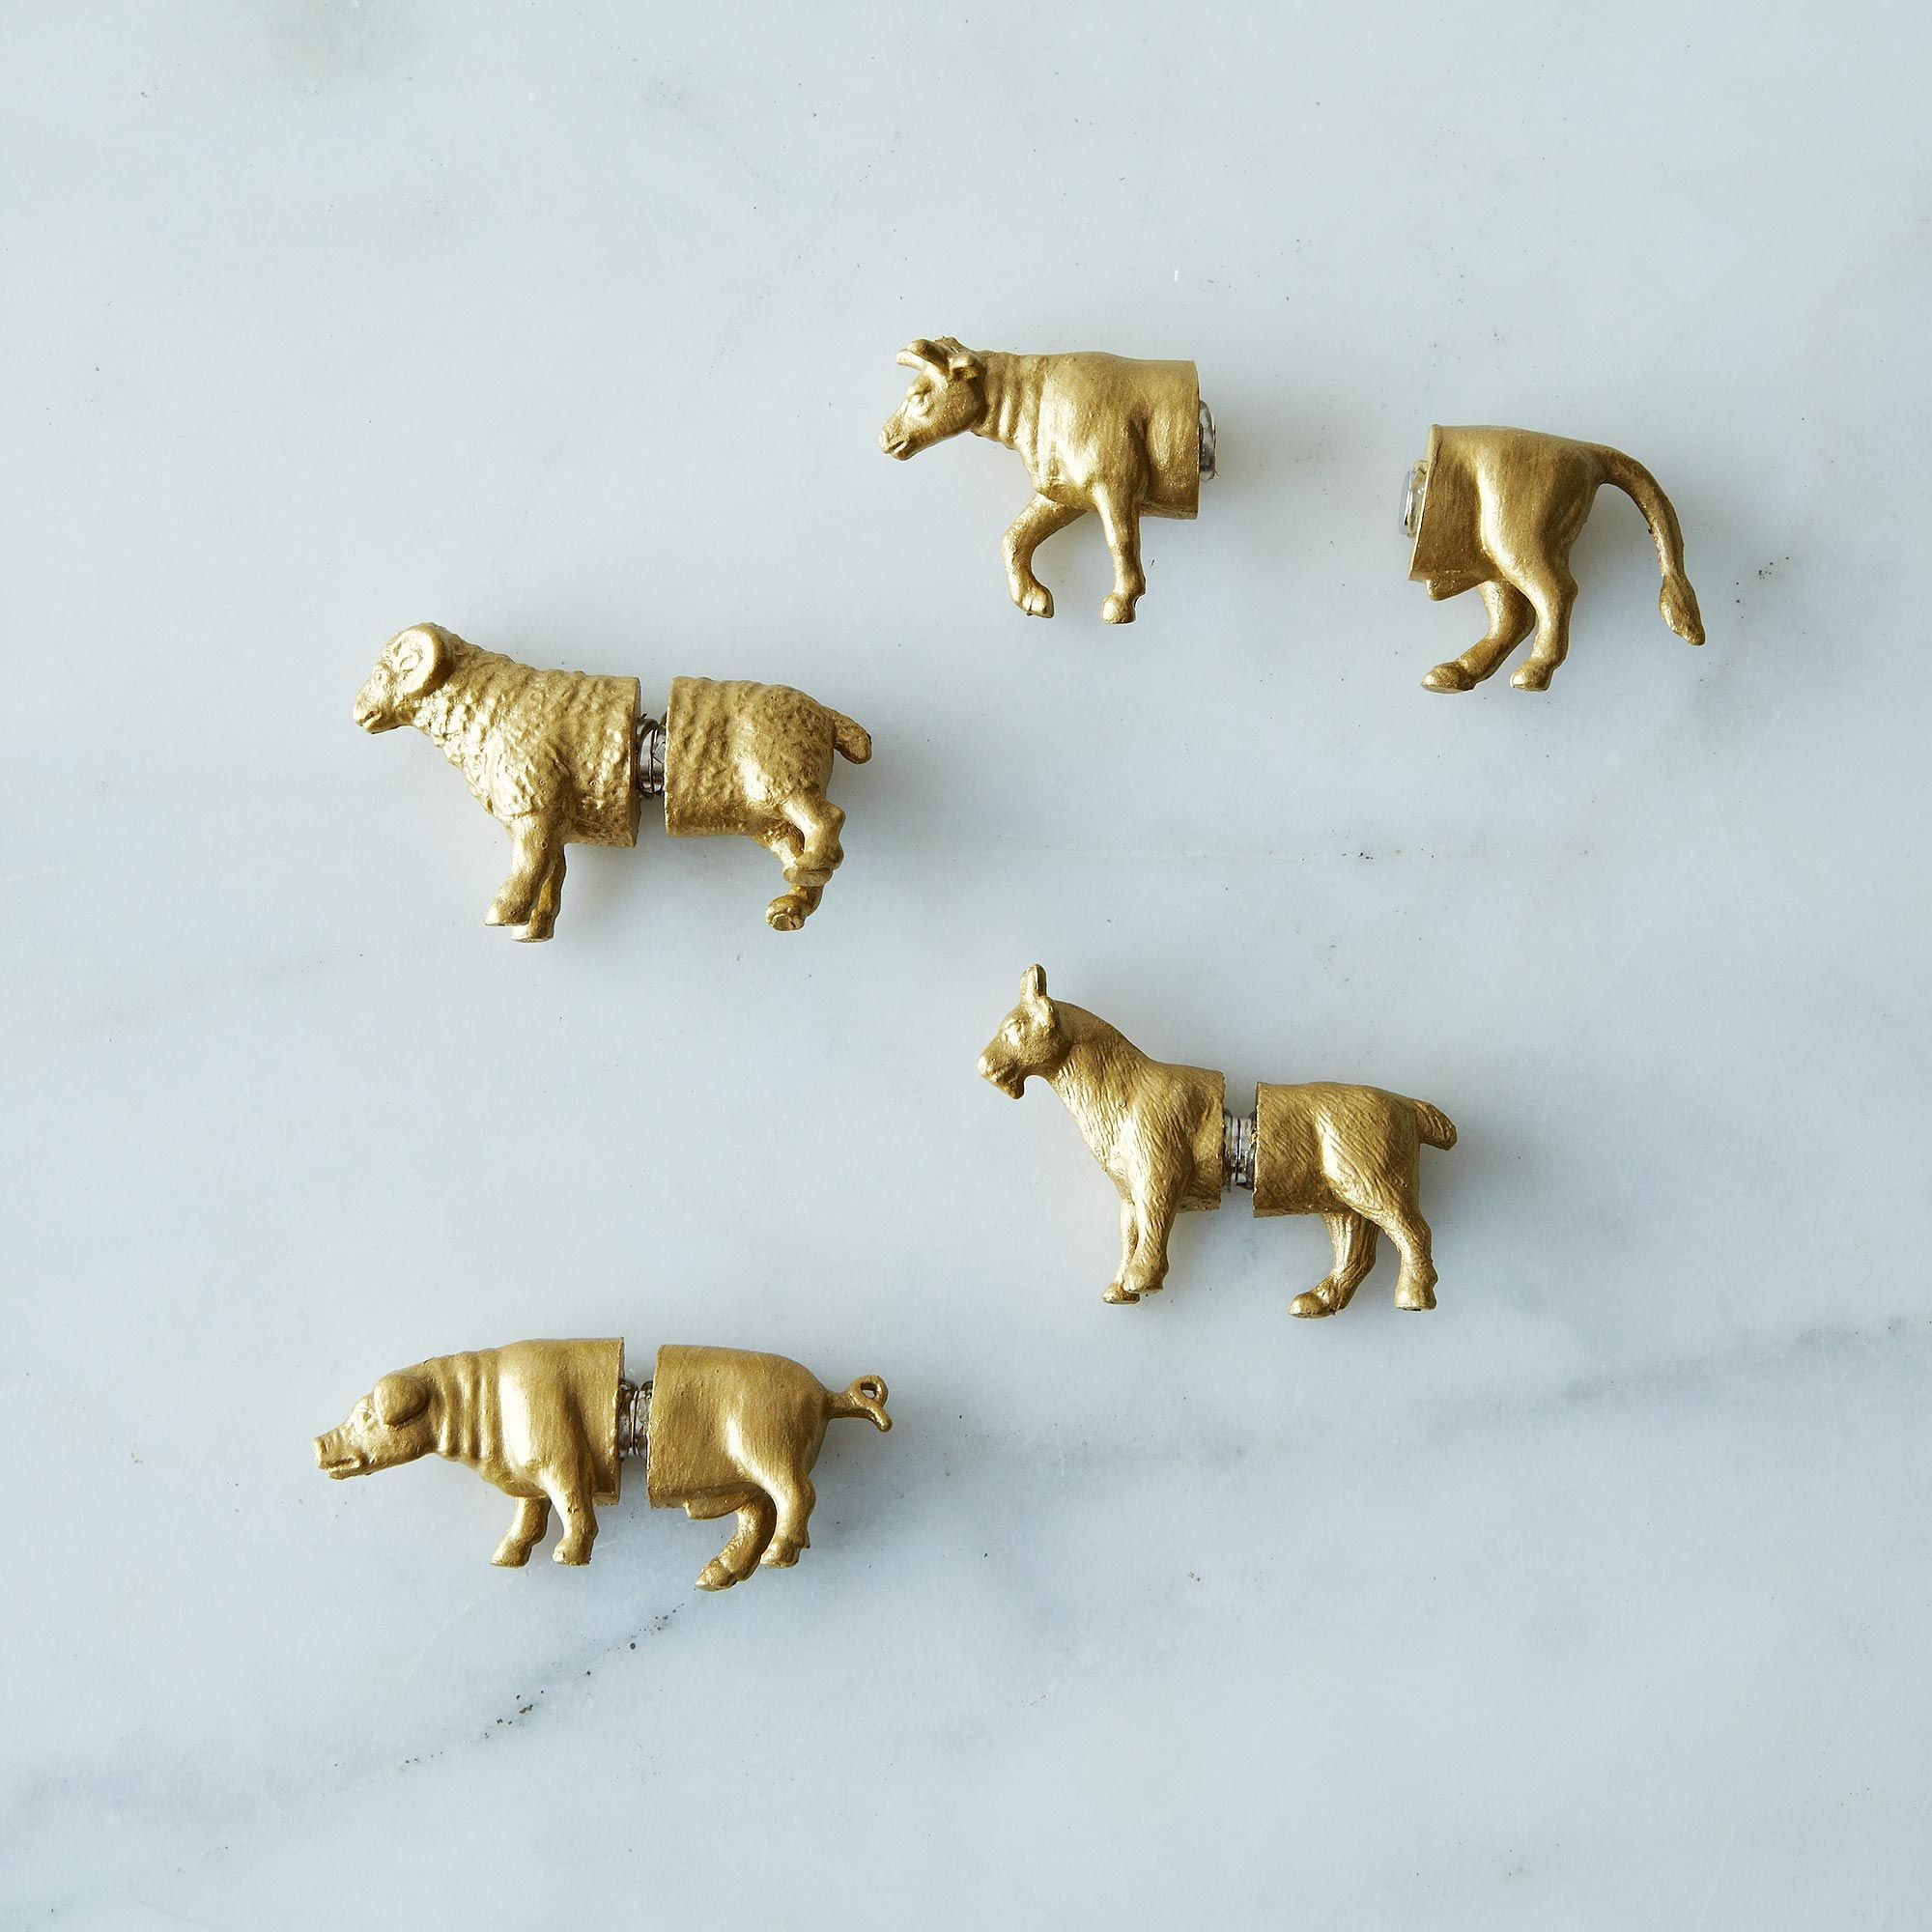 F2cda58e 165e 4a0f 8ab5 98b11f972f79  2014 0122 another frame of mind gold farm animal magnets 004